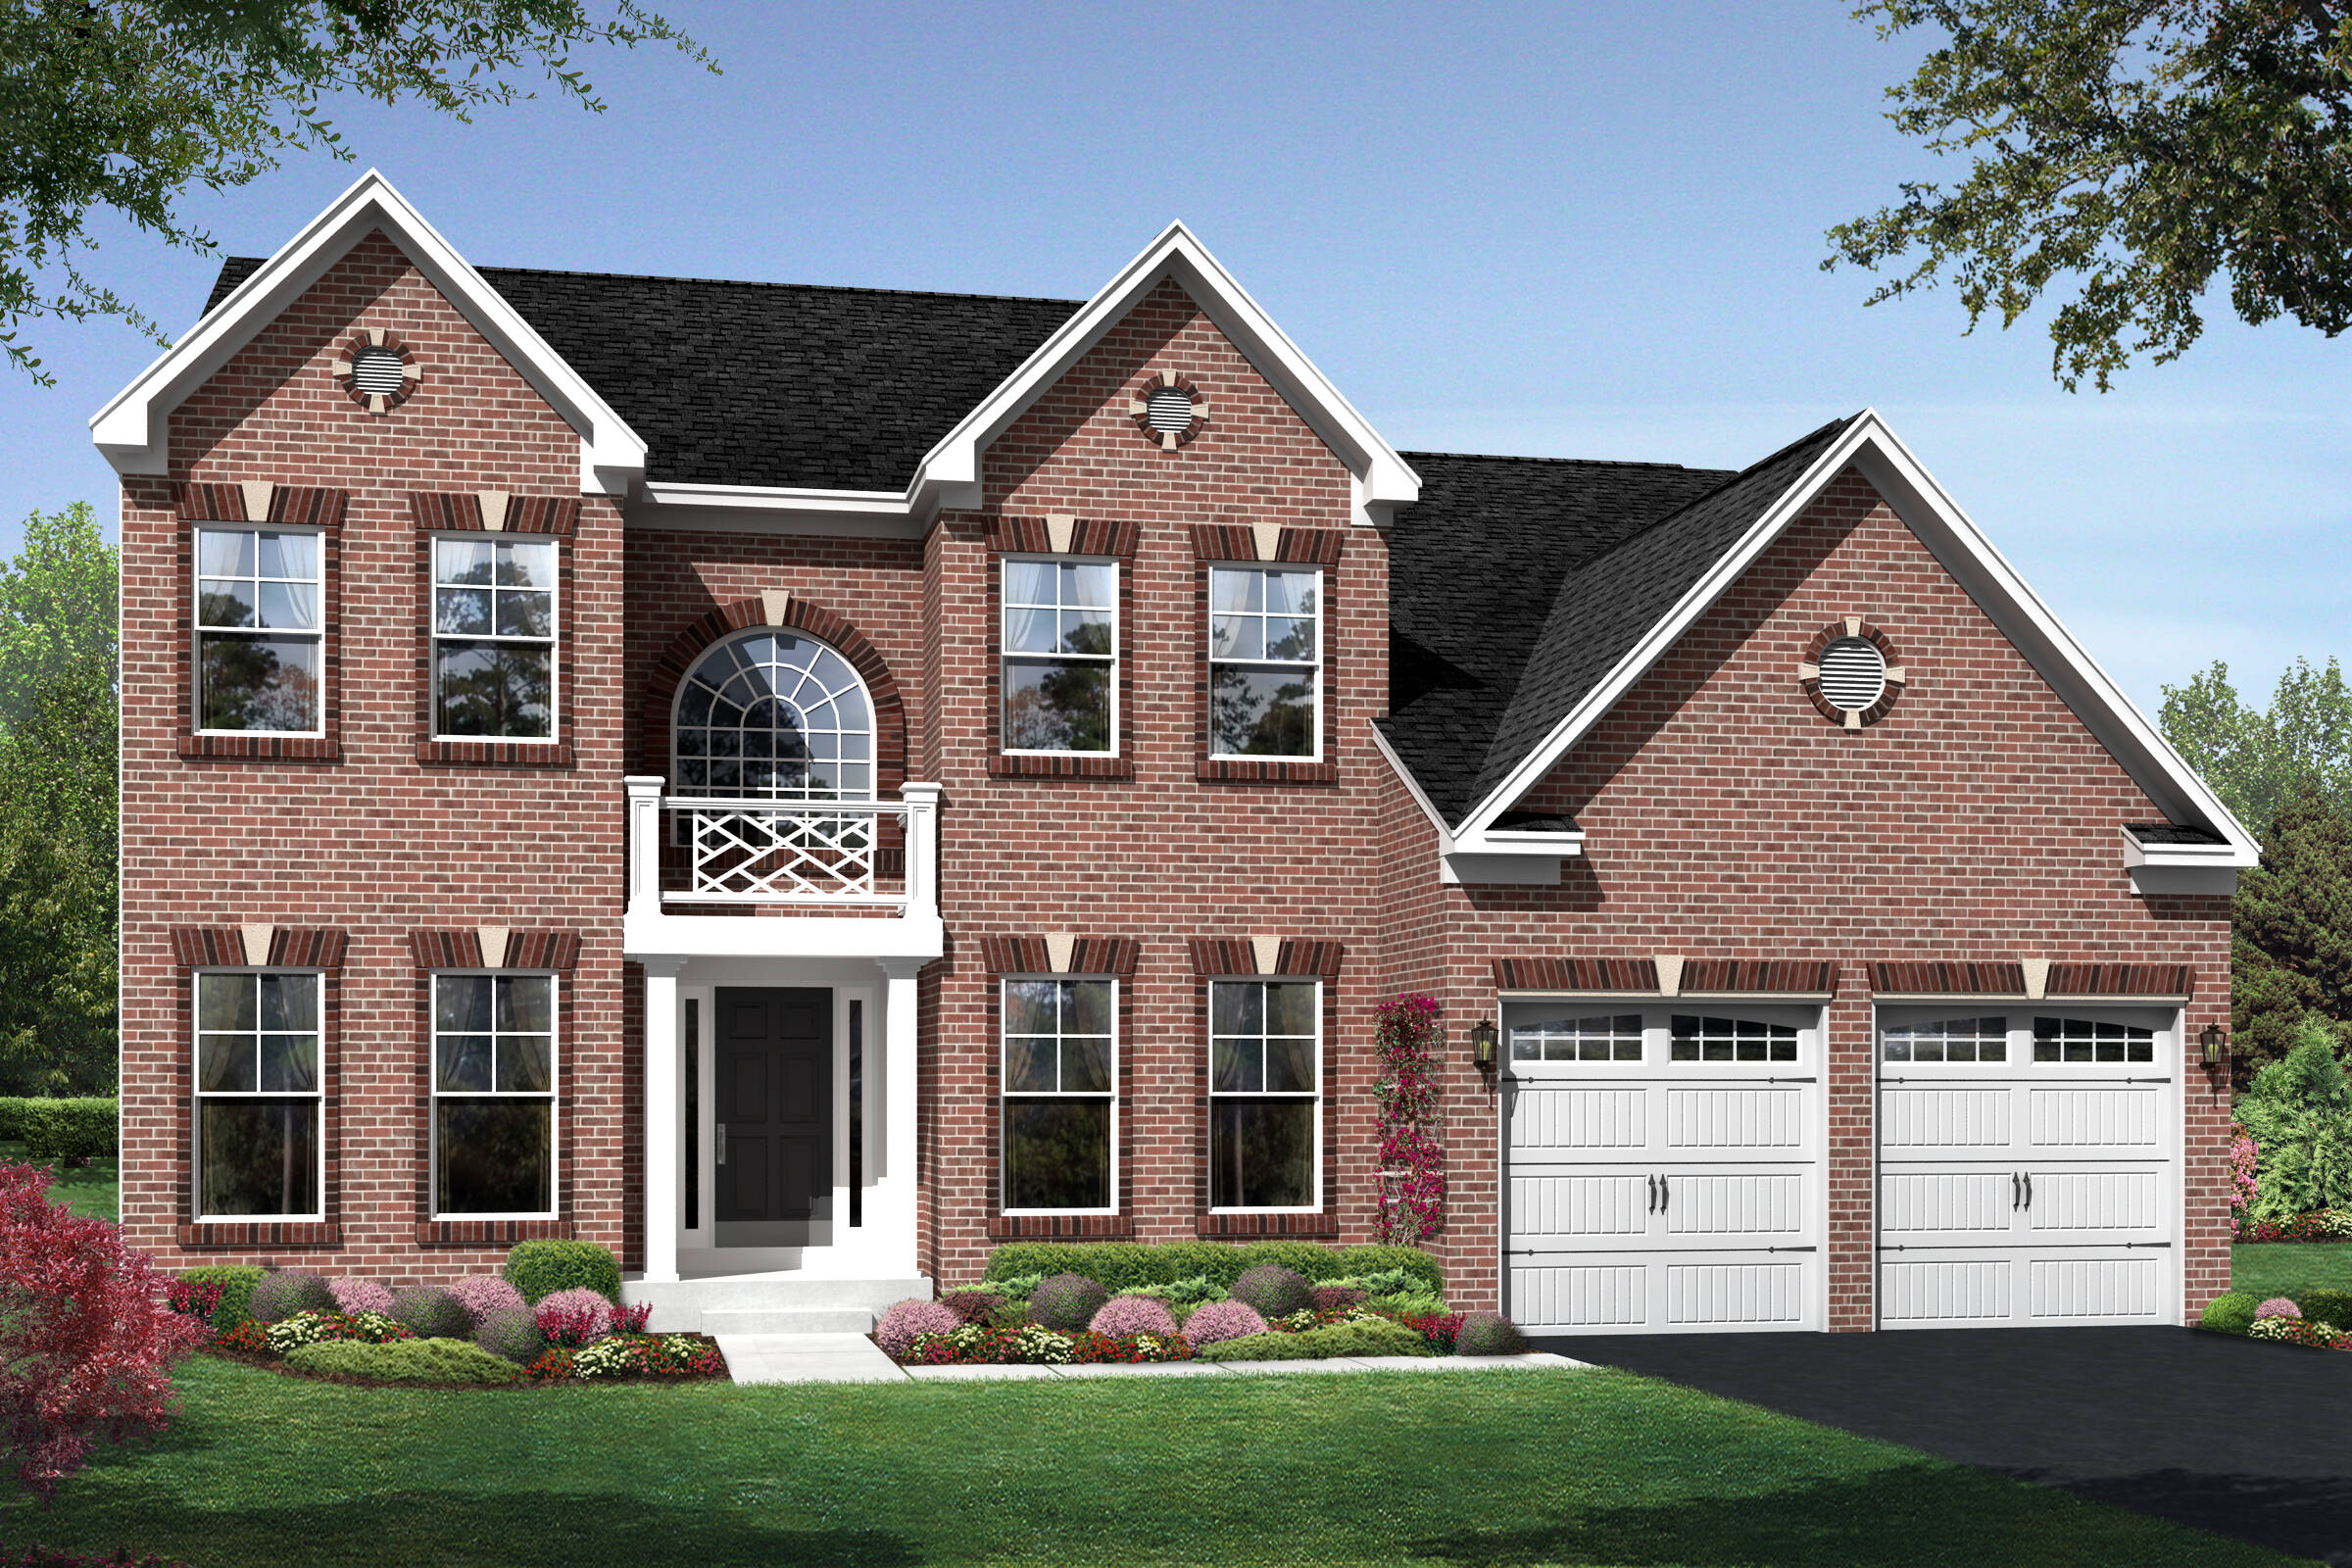 alaska colonial new homes at magness farm in maryland